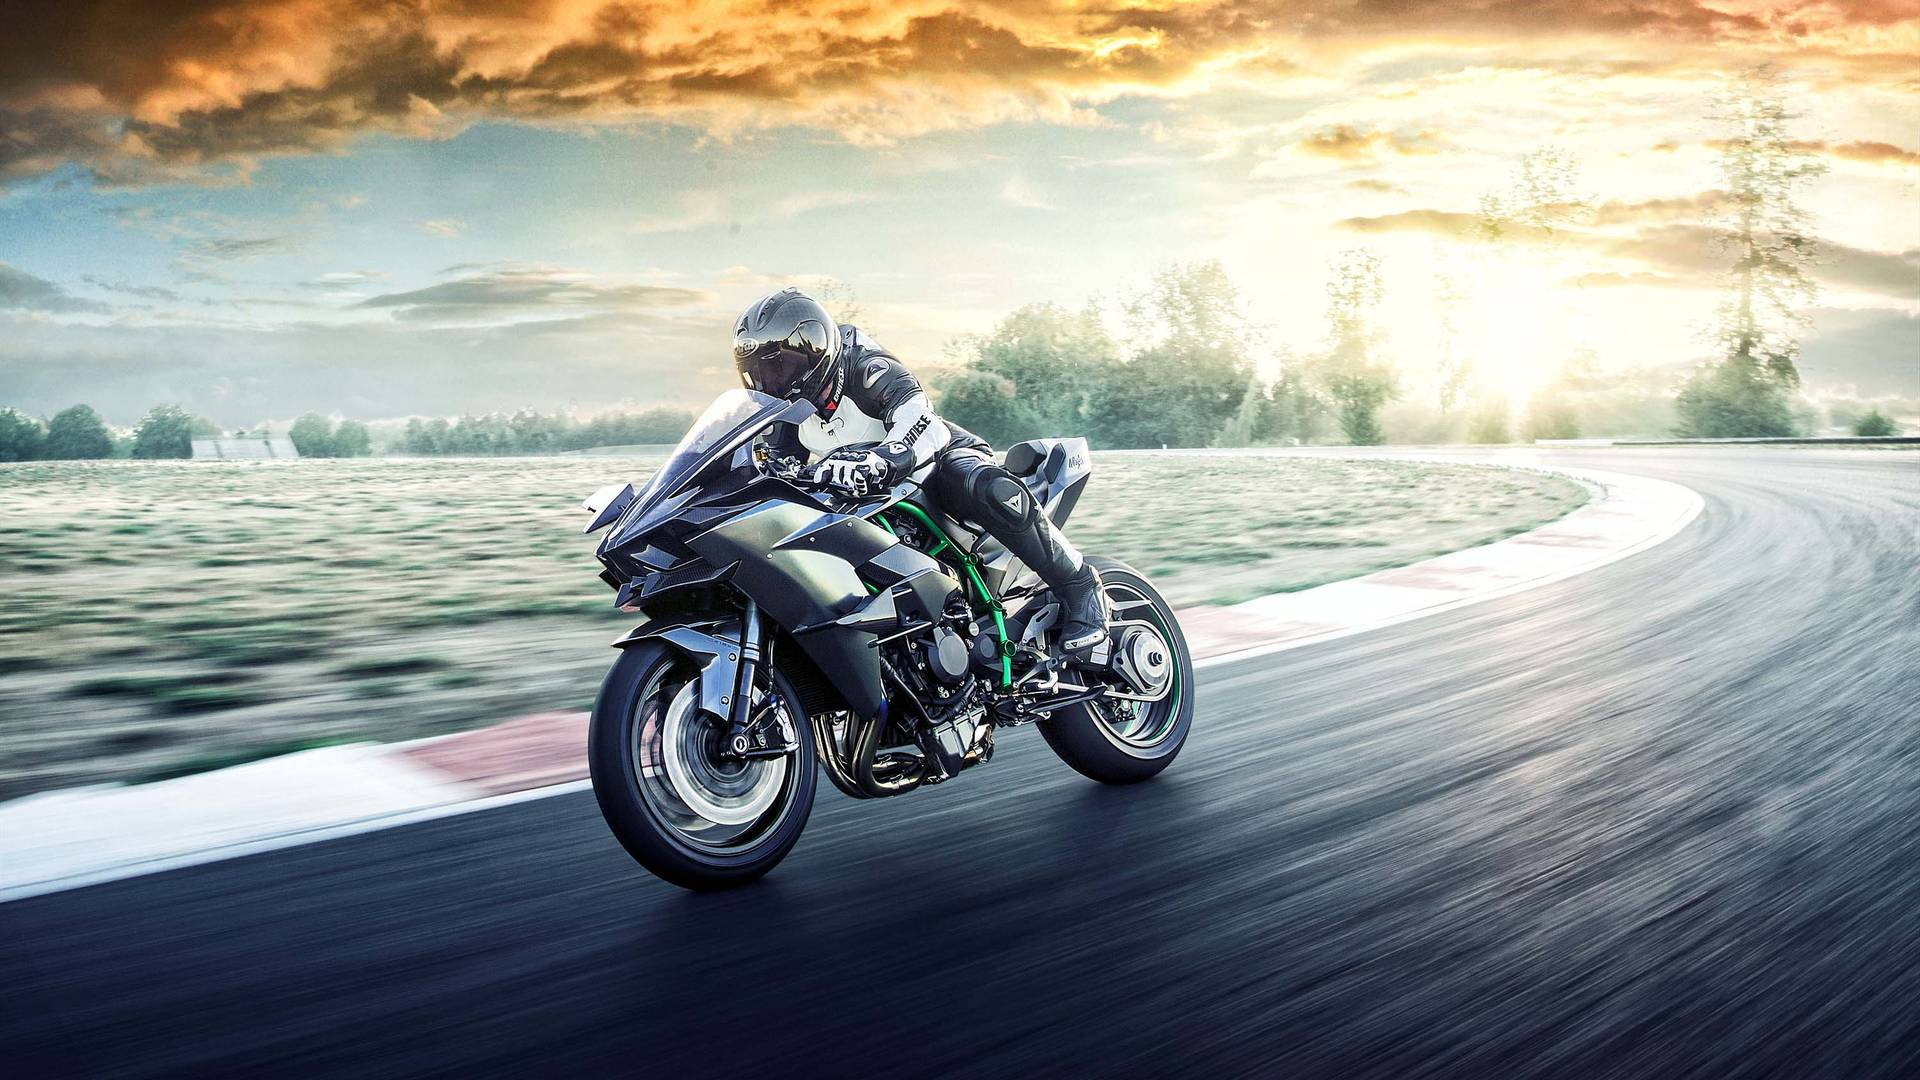 Kawasaki Confirms The Ninja H2 Power Figures Imotorbike News